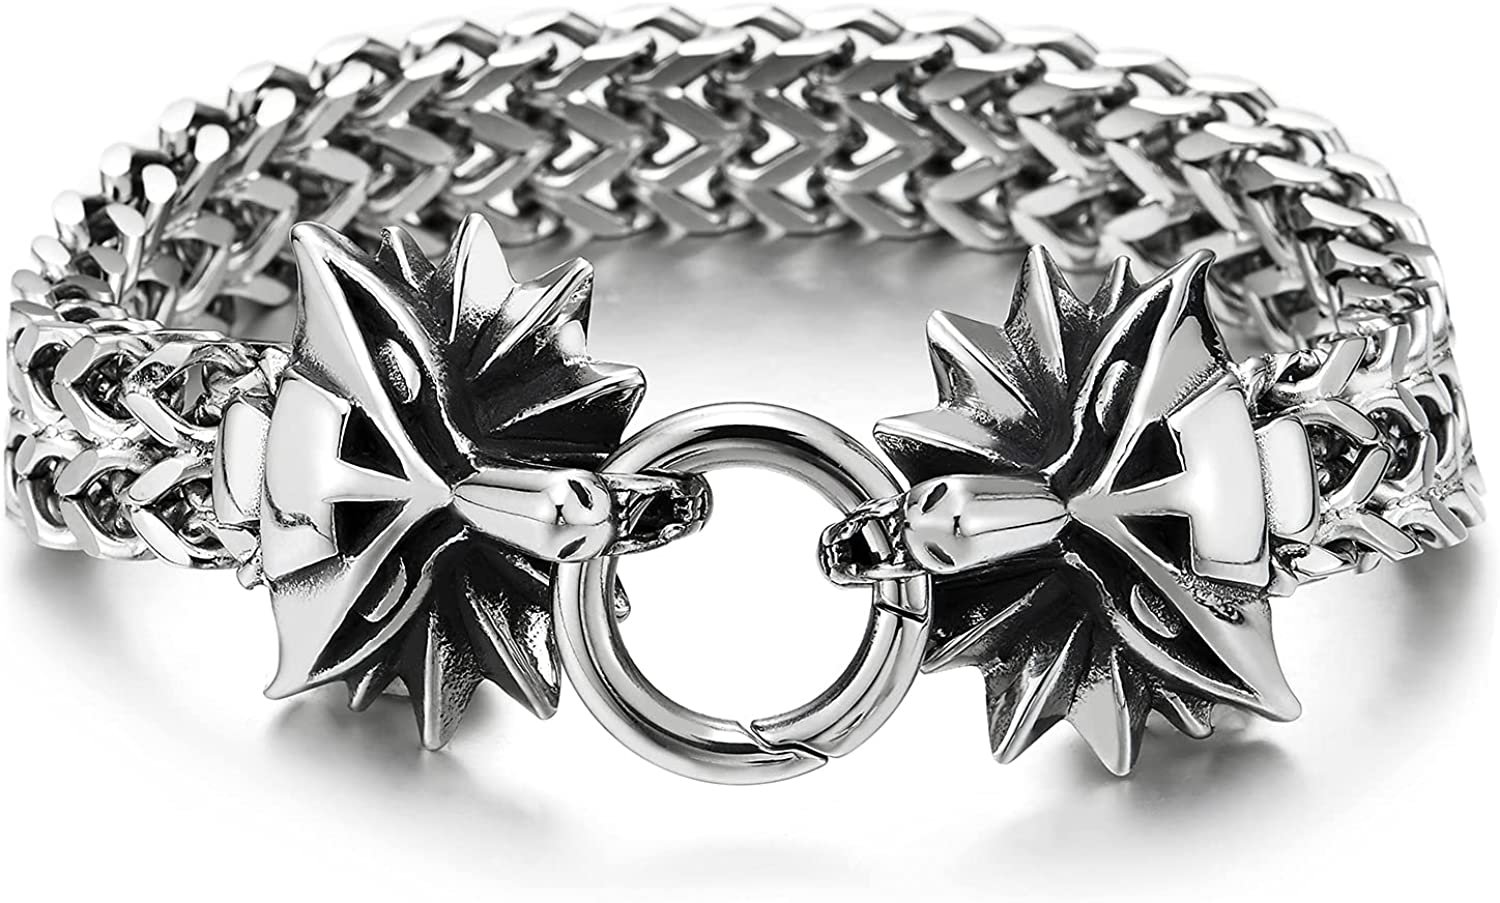 Biker Mens Steel Franco Box Link Chain Bracelet with Vintage Fox Head Spring Ring Clasp, 8.6 Inches